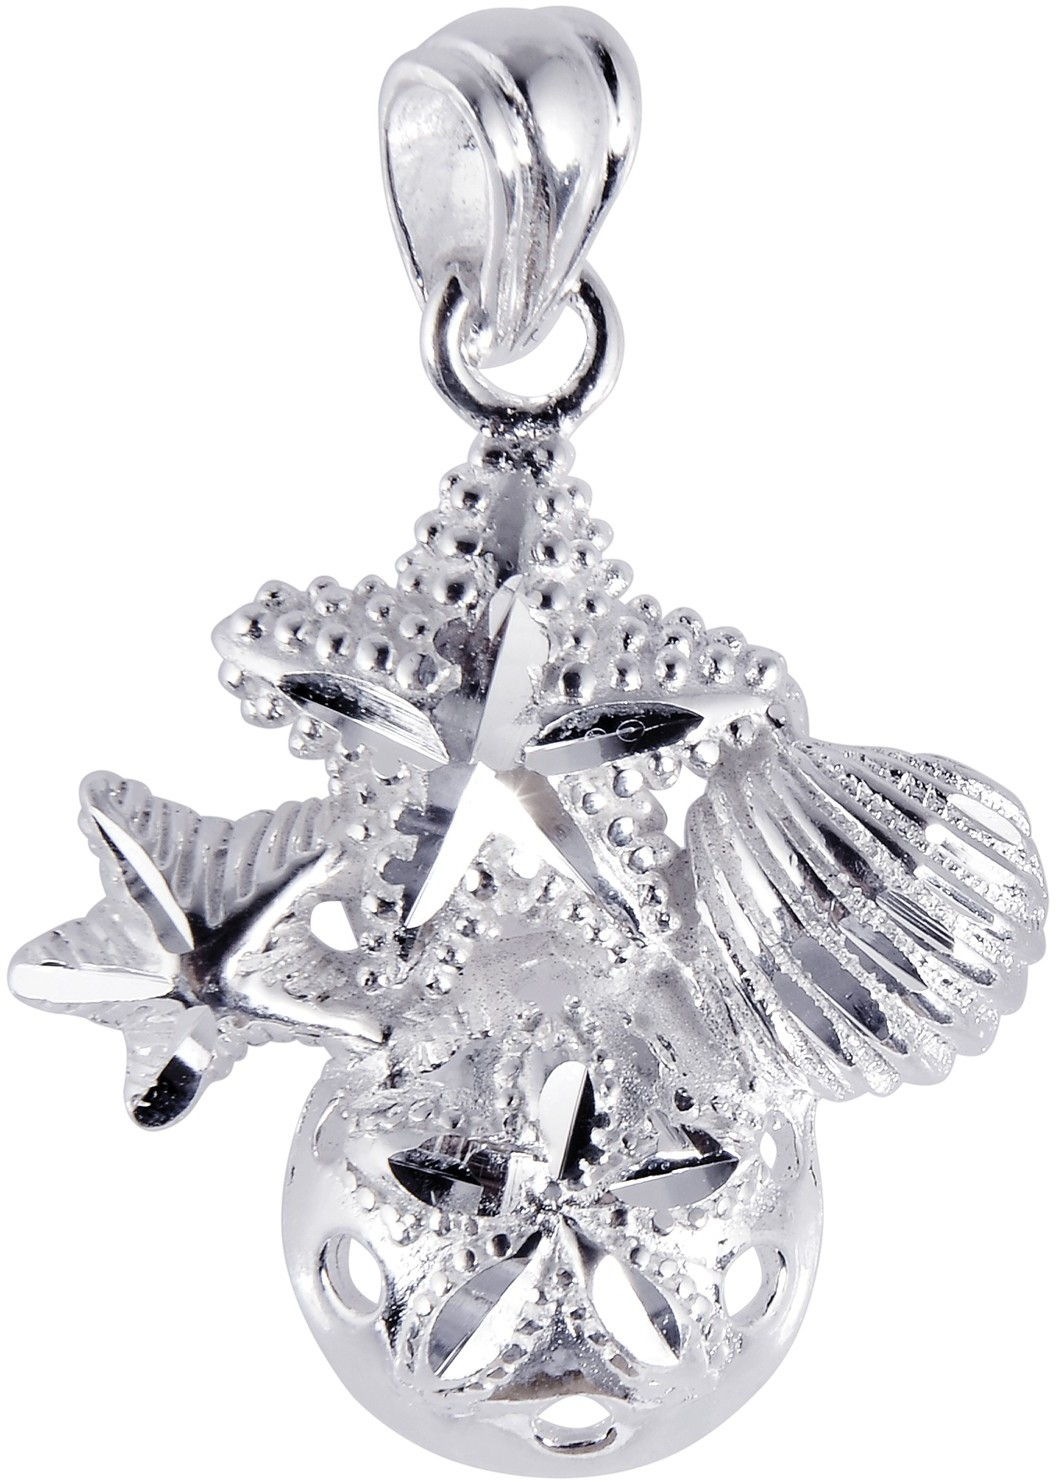 Silver Rhodium Plated Shiny Textured Sand Dollar & Sea Shell & Starfish Sea Life Pendant